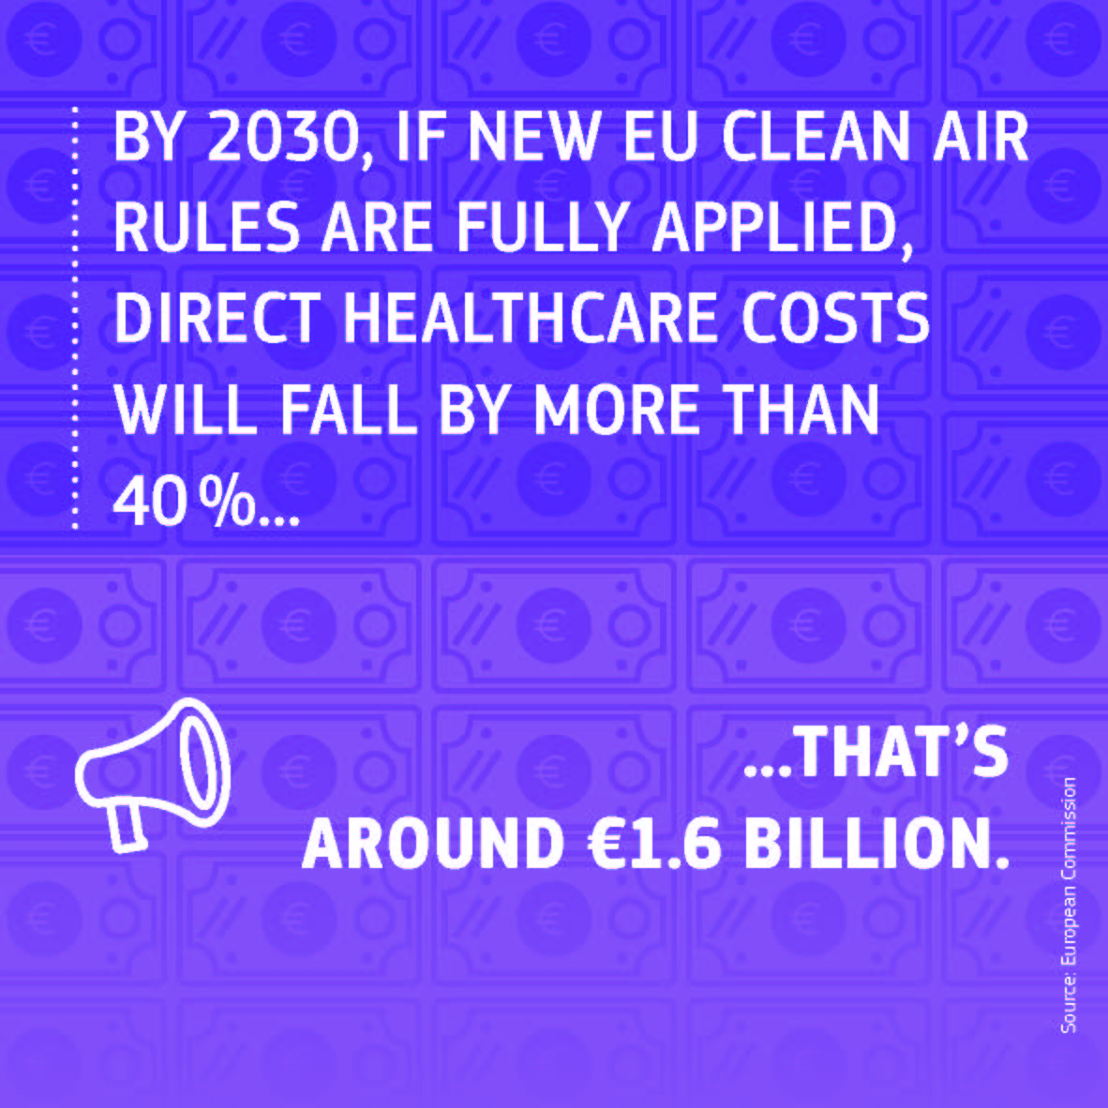 EU Clean Air Rules Impact Health Care Costs